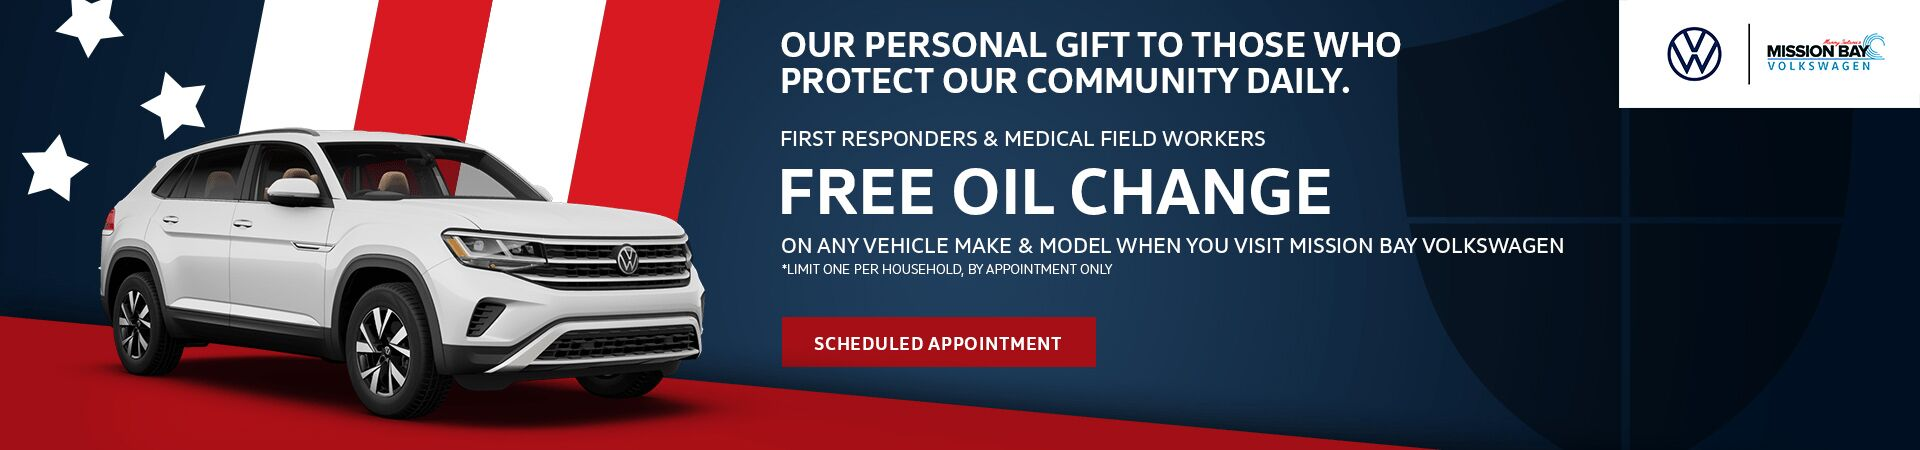 Free Oil Change for First Responders & Medical Field Workers at San Diego Volkswagen dealership